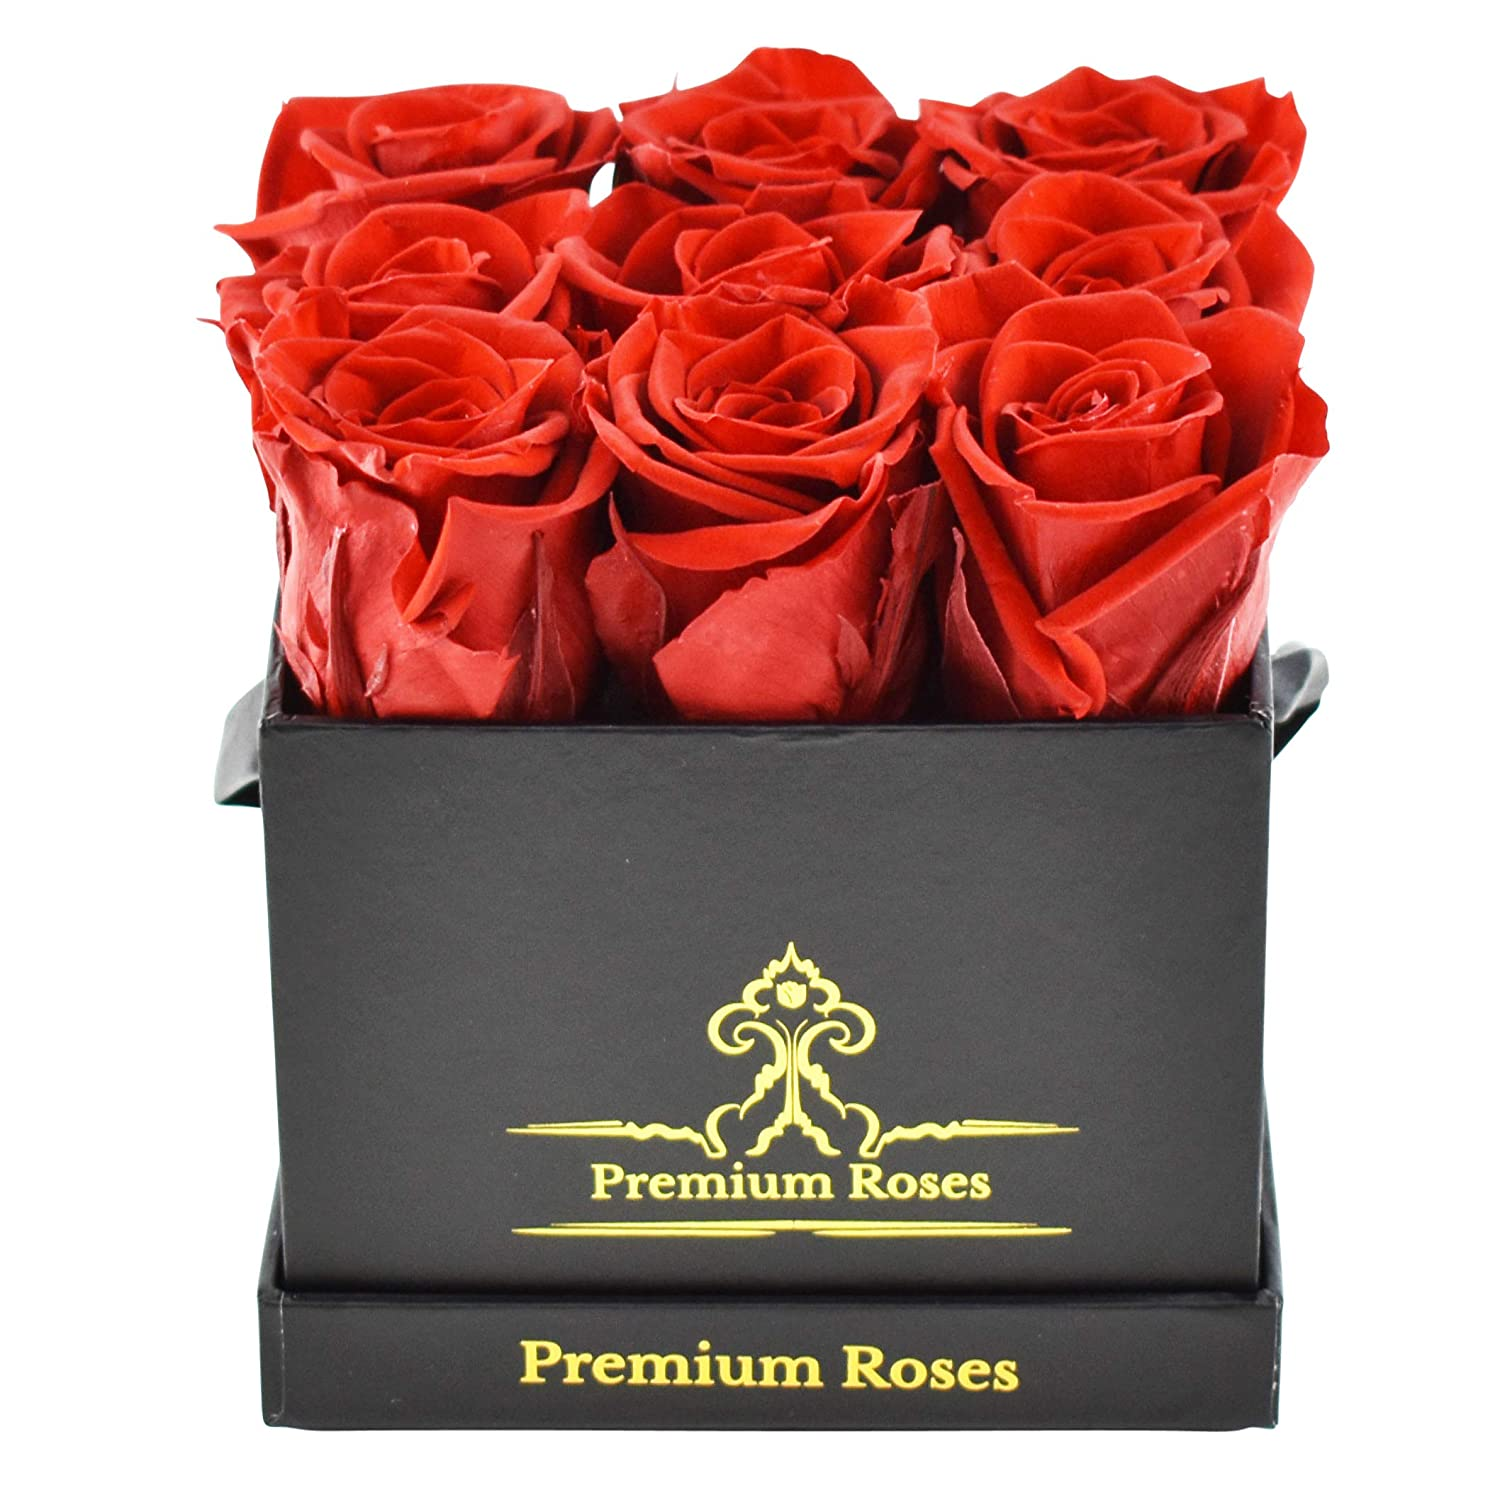 Real Roses That Last 365 Days Roses In The Box Best Gift For Her